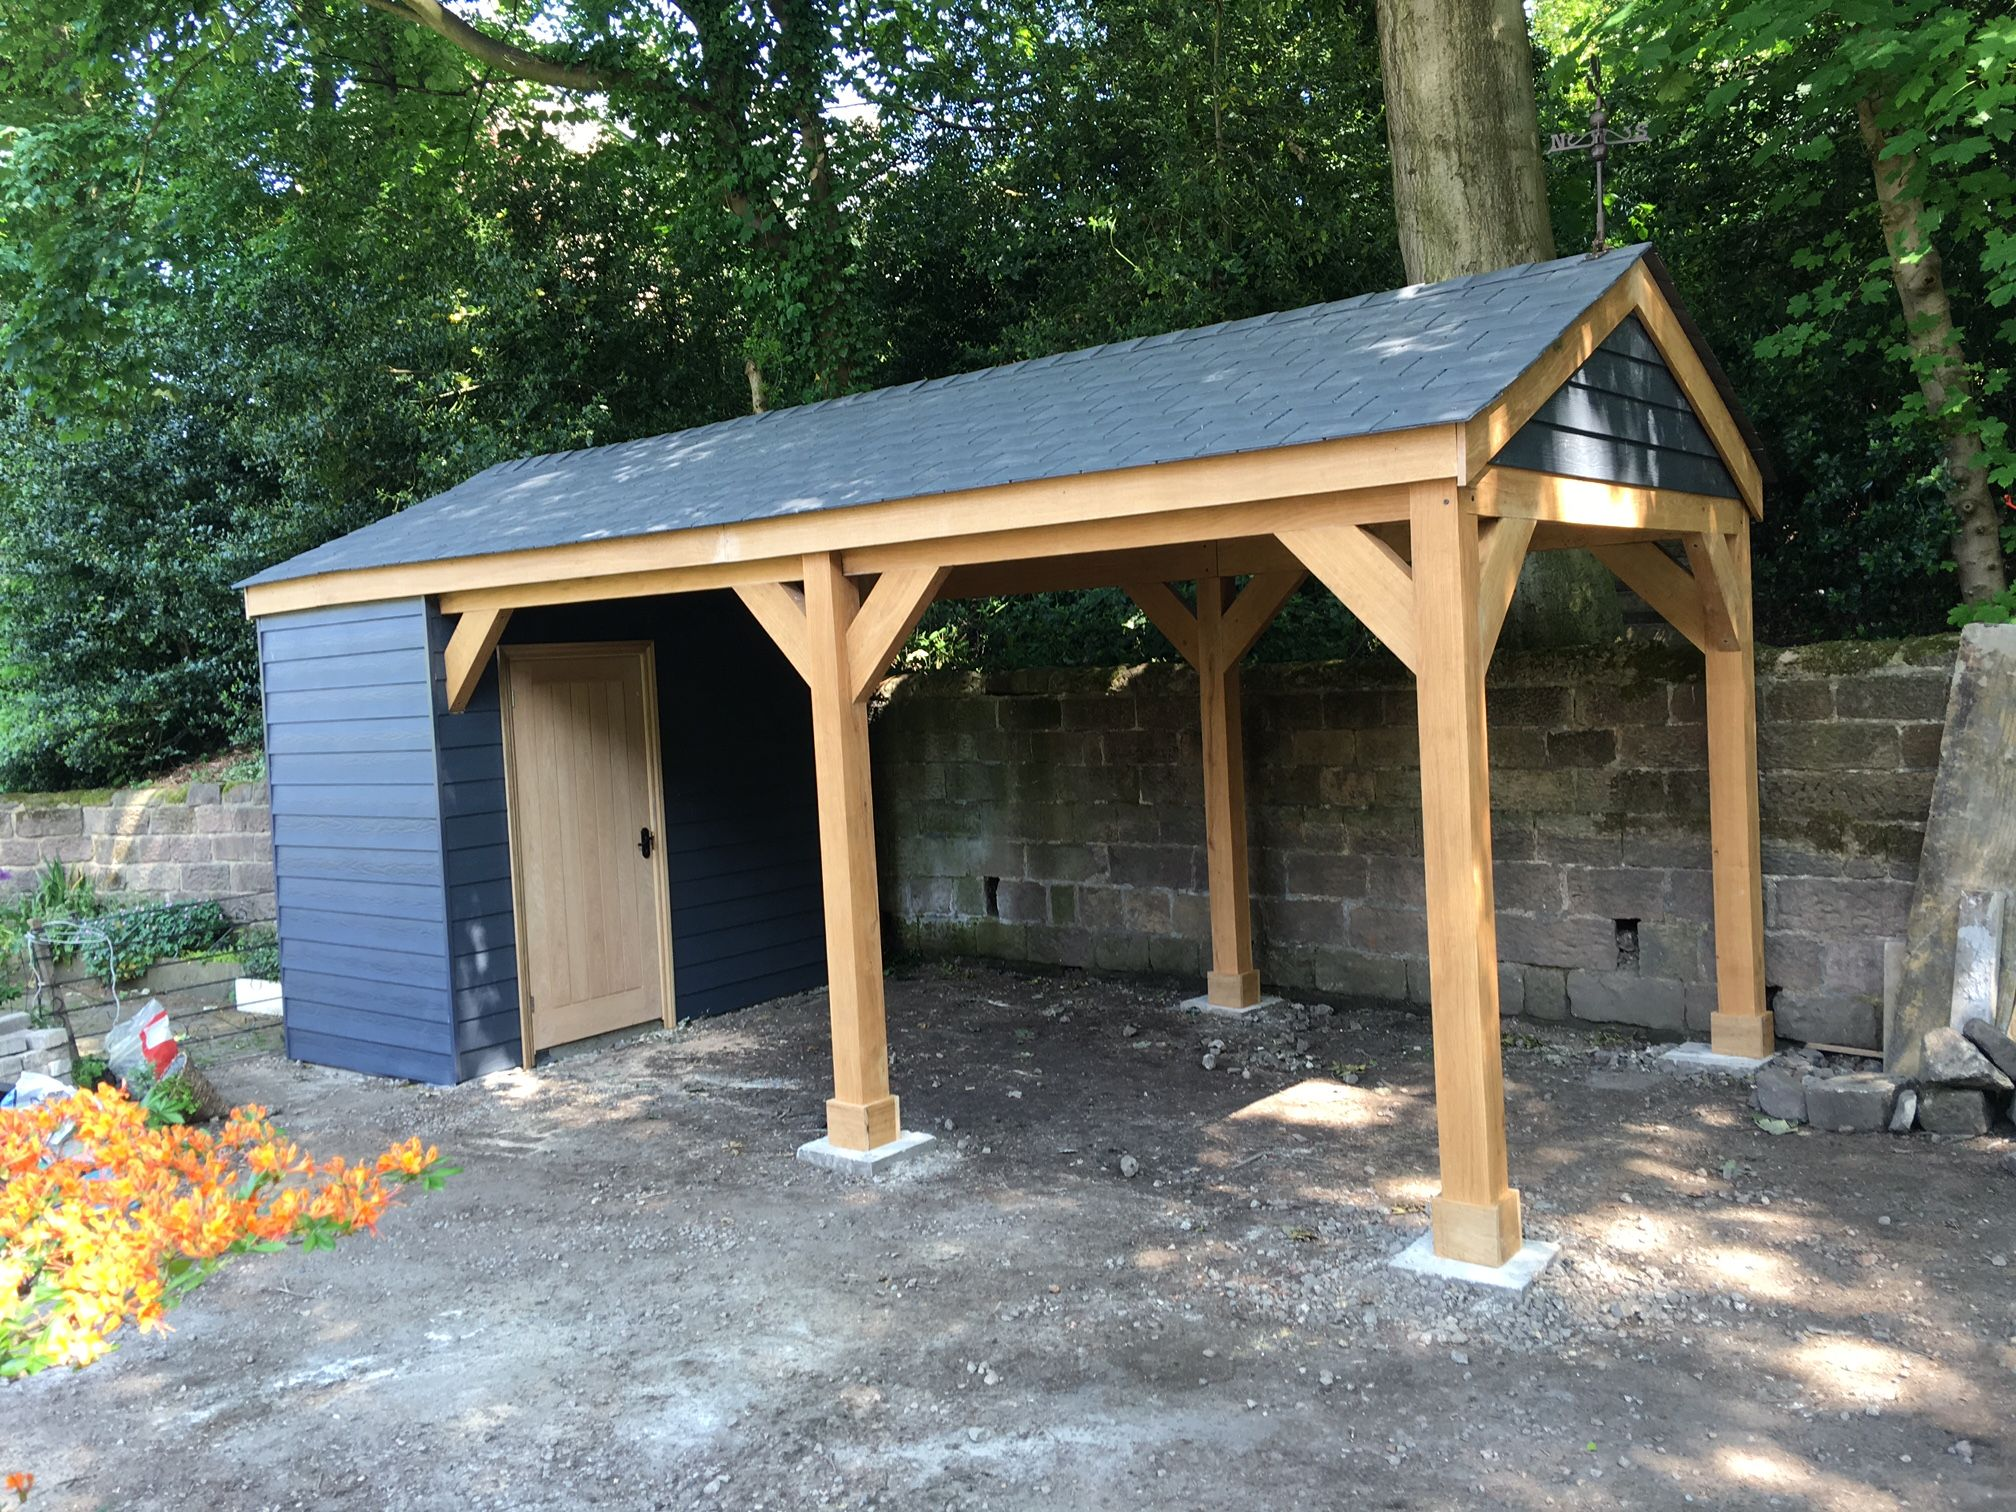 Pin By Karen On Driveway Wooden Carports House With Porch Carport Designs